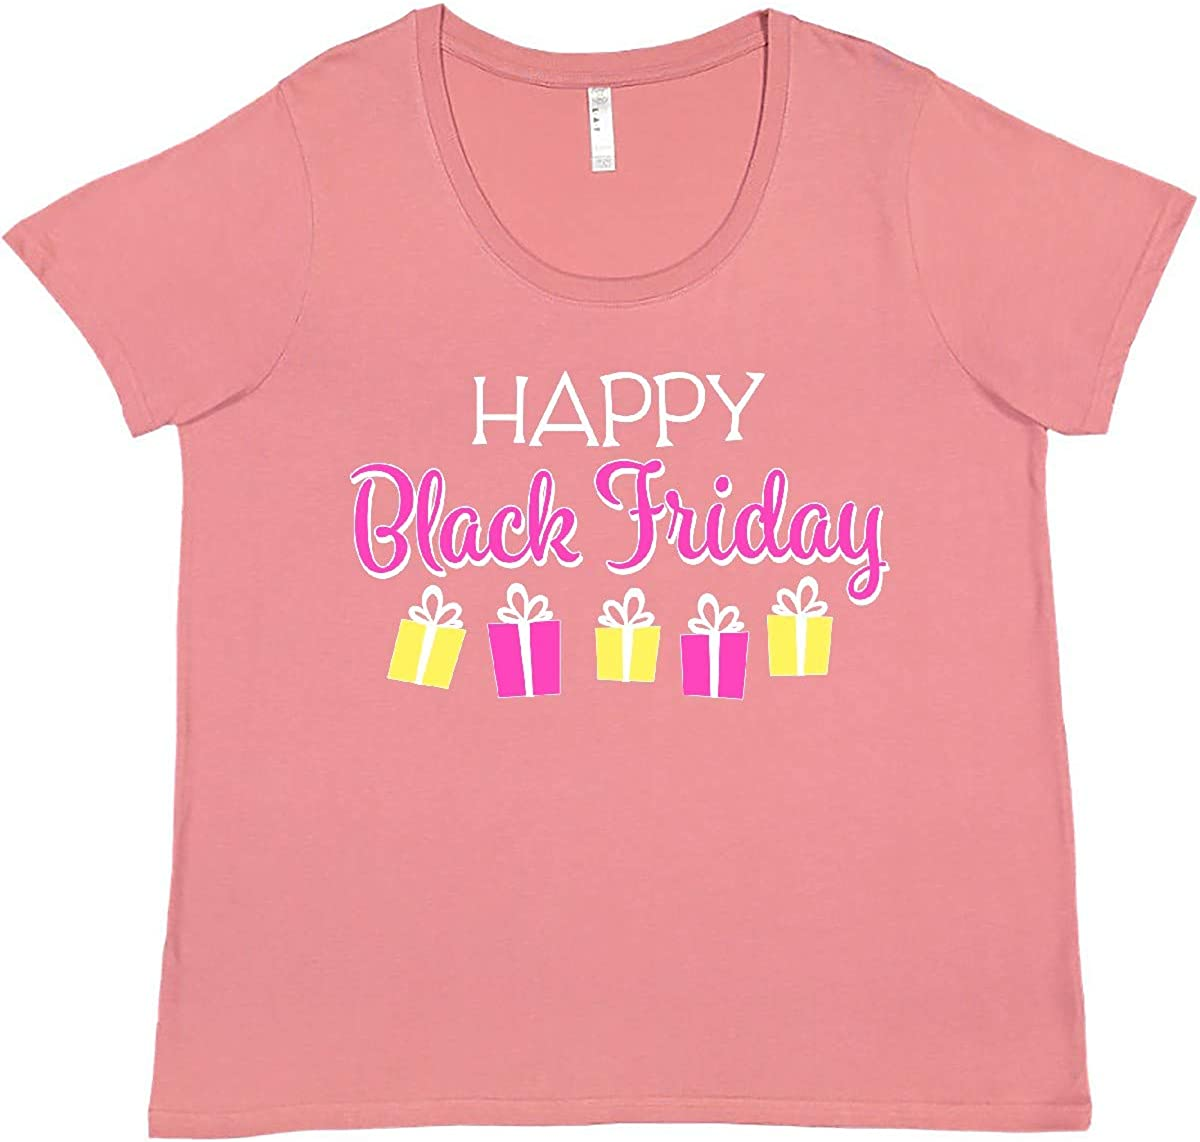 inktastic Happy Gift Shopping T-Shirt Size Plus Super special price Women's Finally resale start